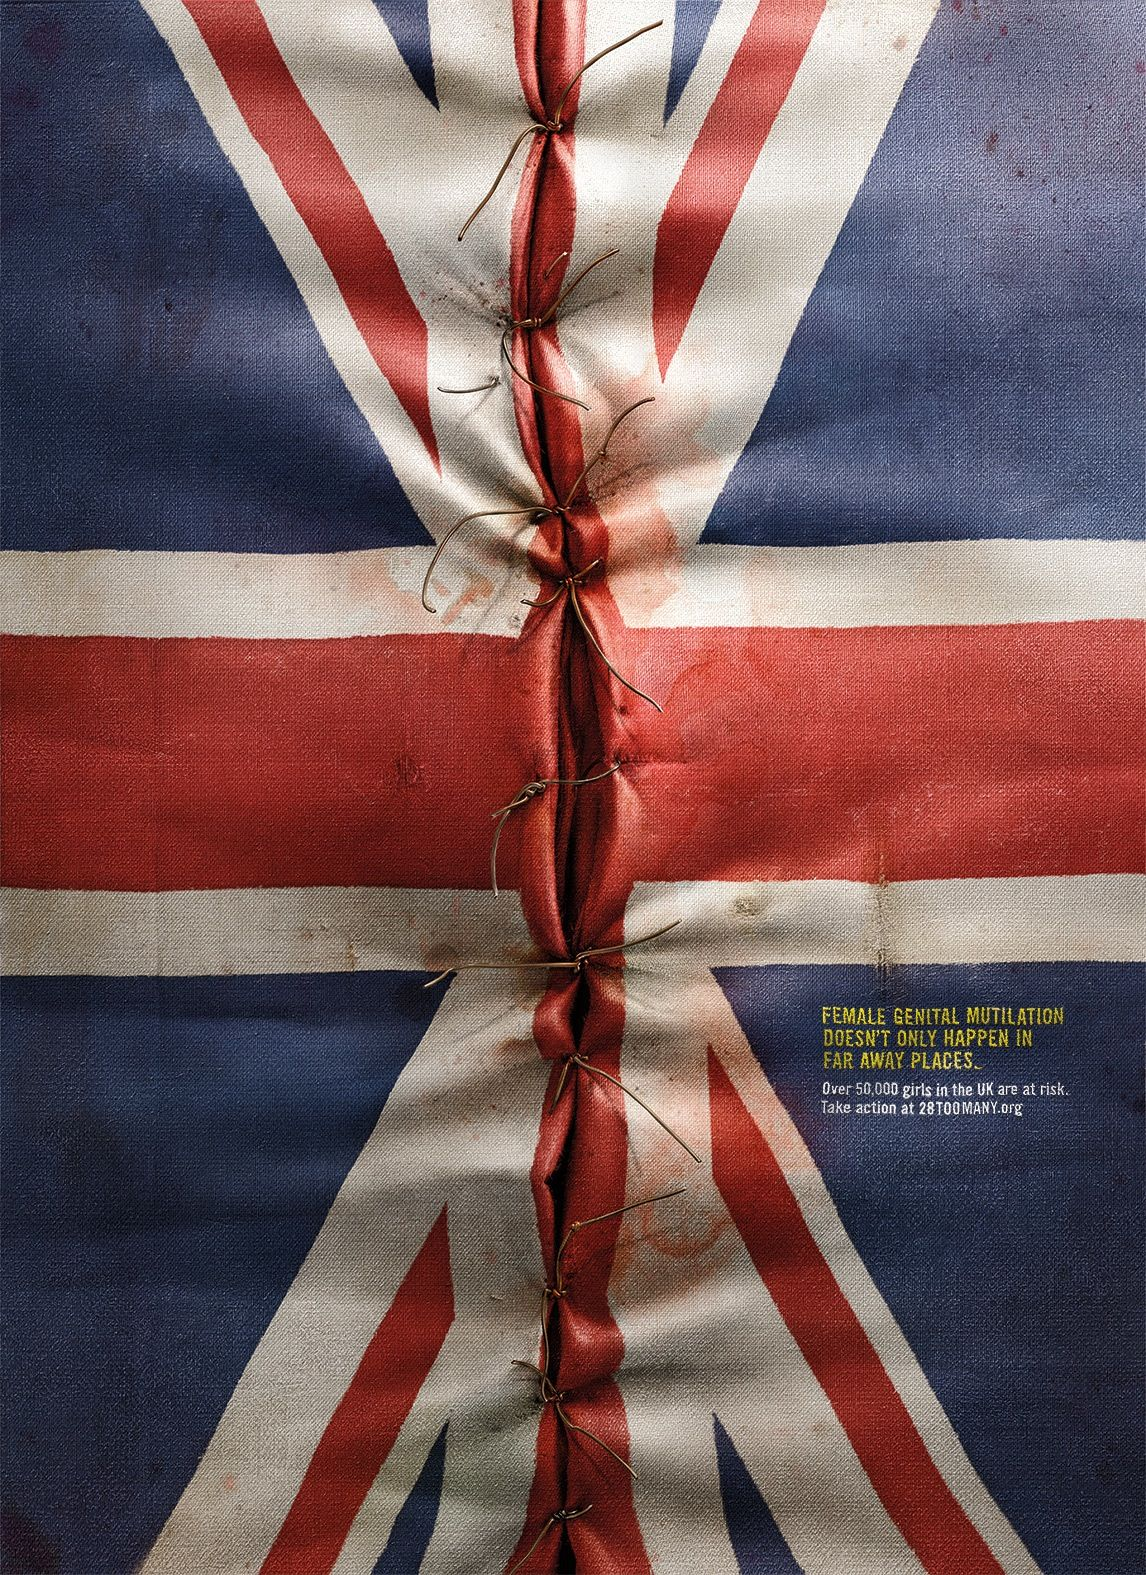 female genital mutilation doesnt only happen in far away places advertising agency - Ogilvy Mather Ad Agency